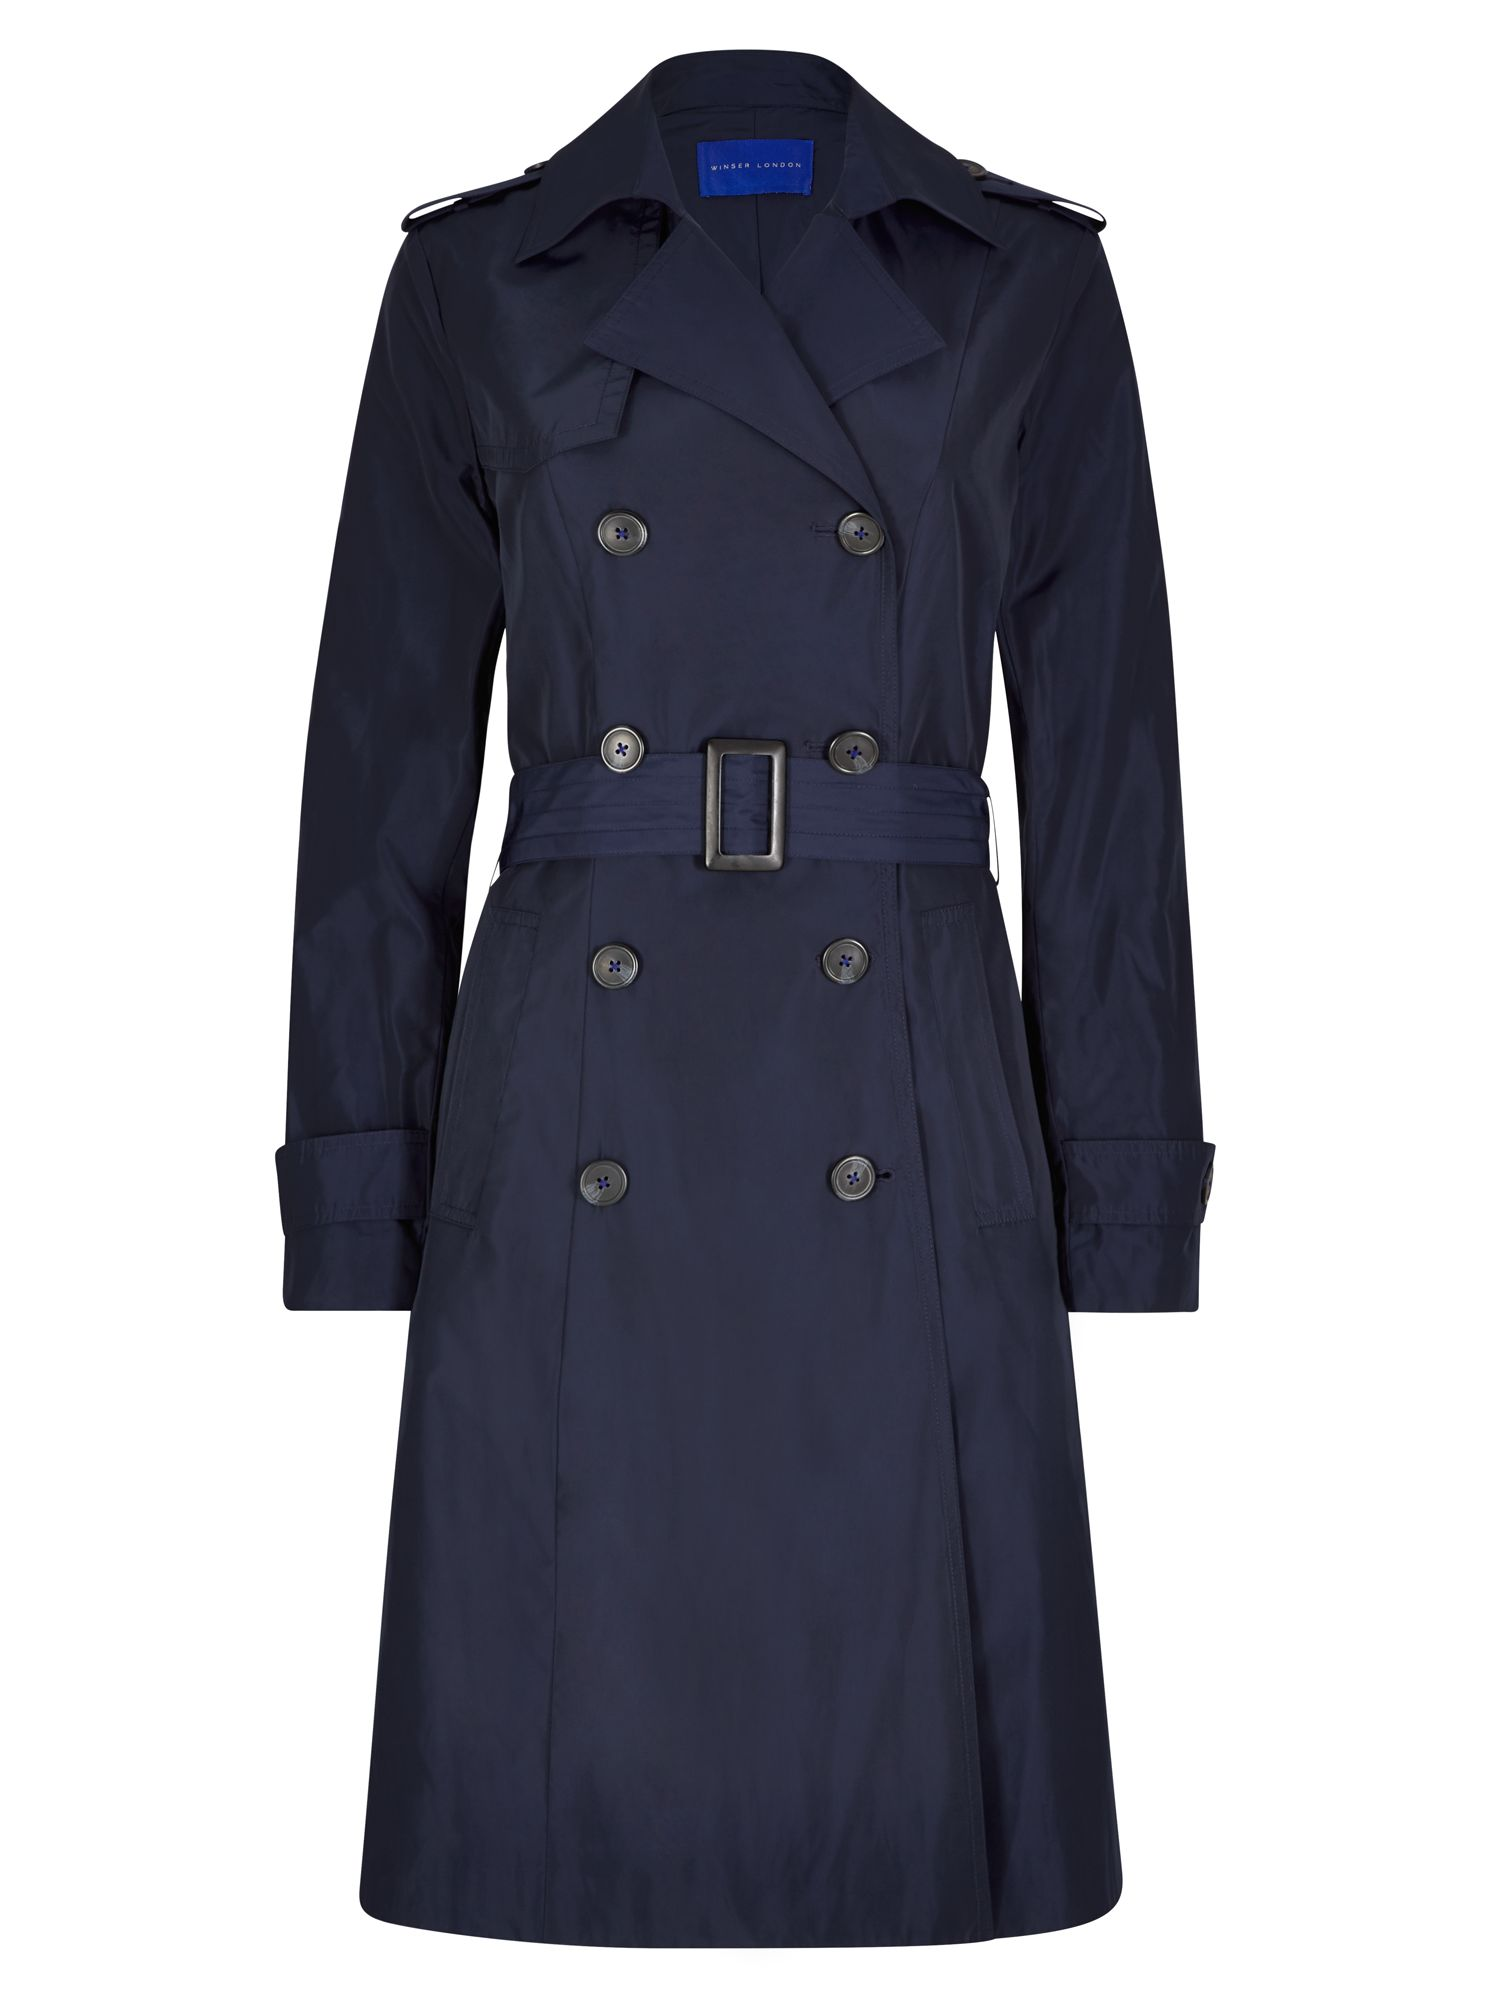 Winser London Winser Trench Coat, Blue